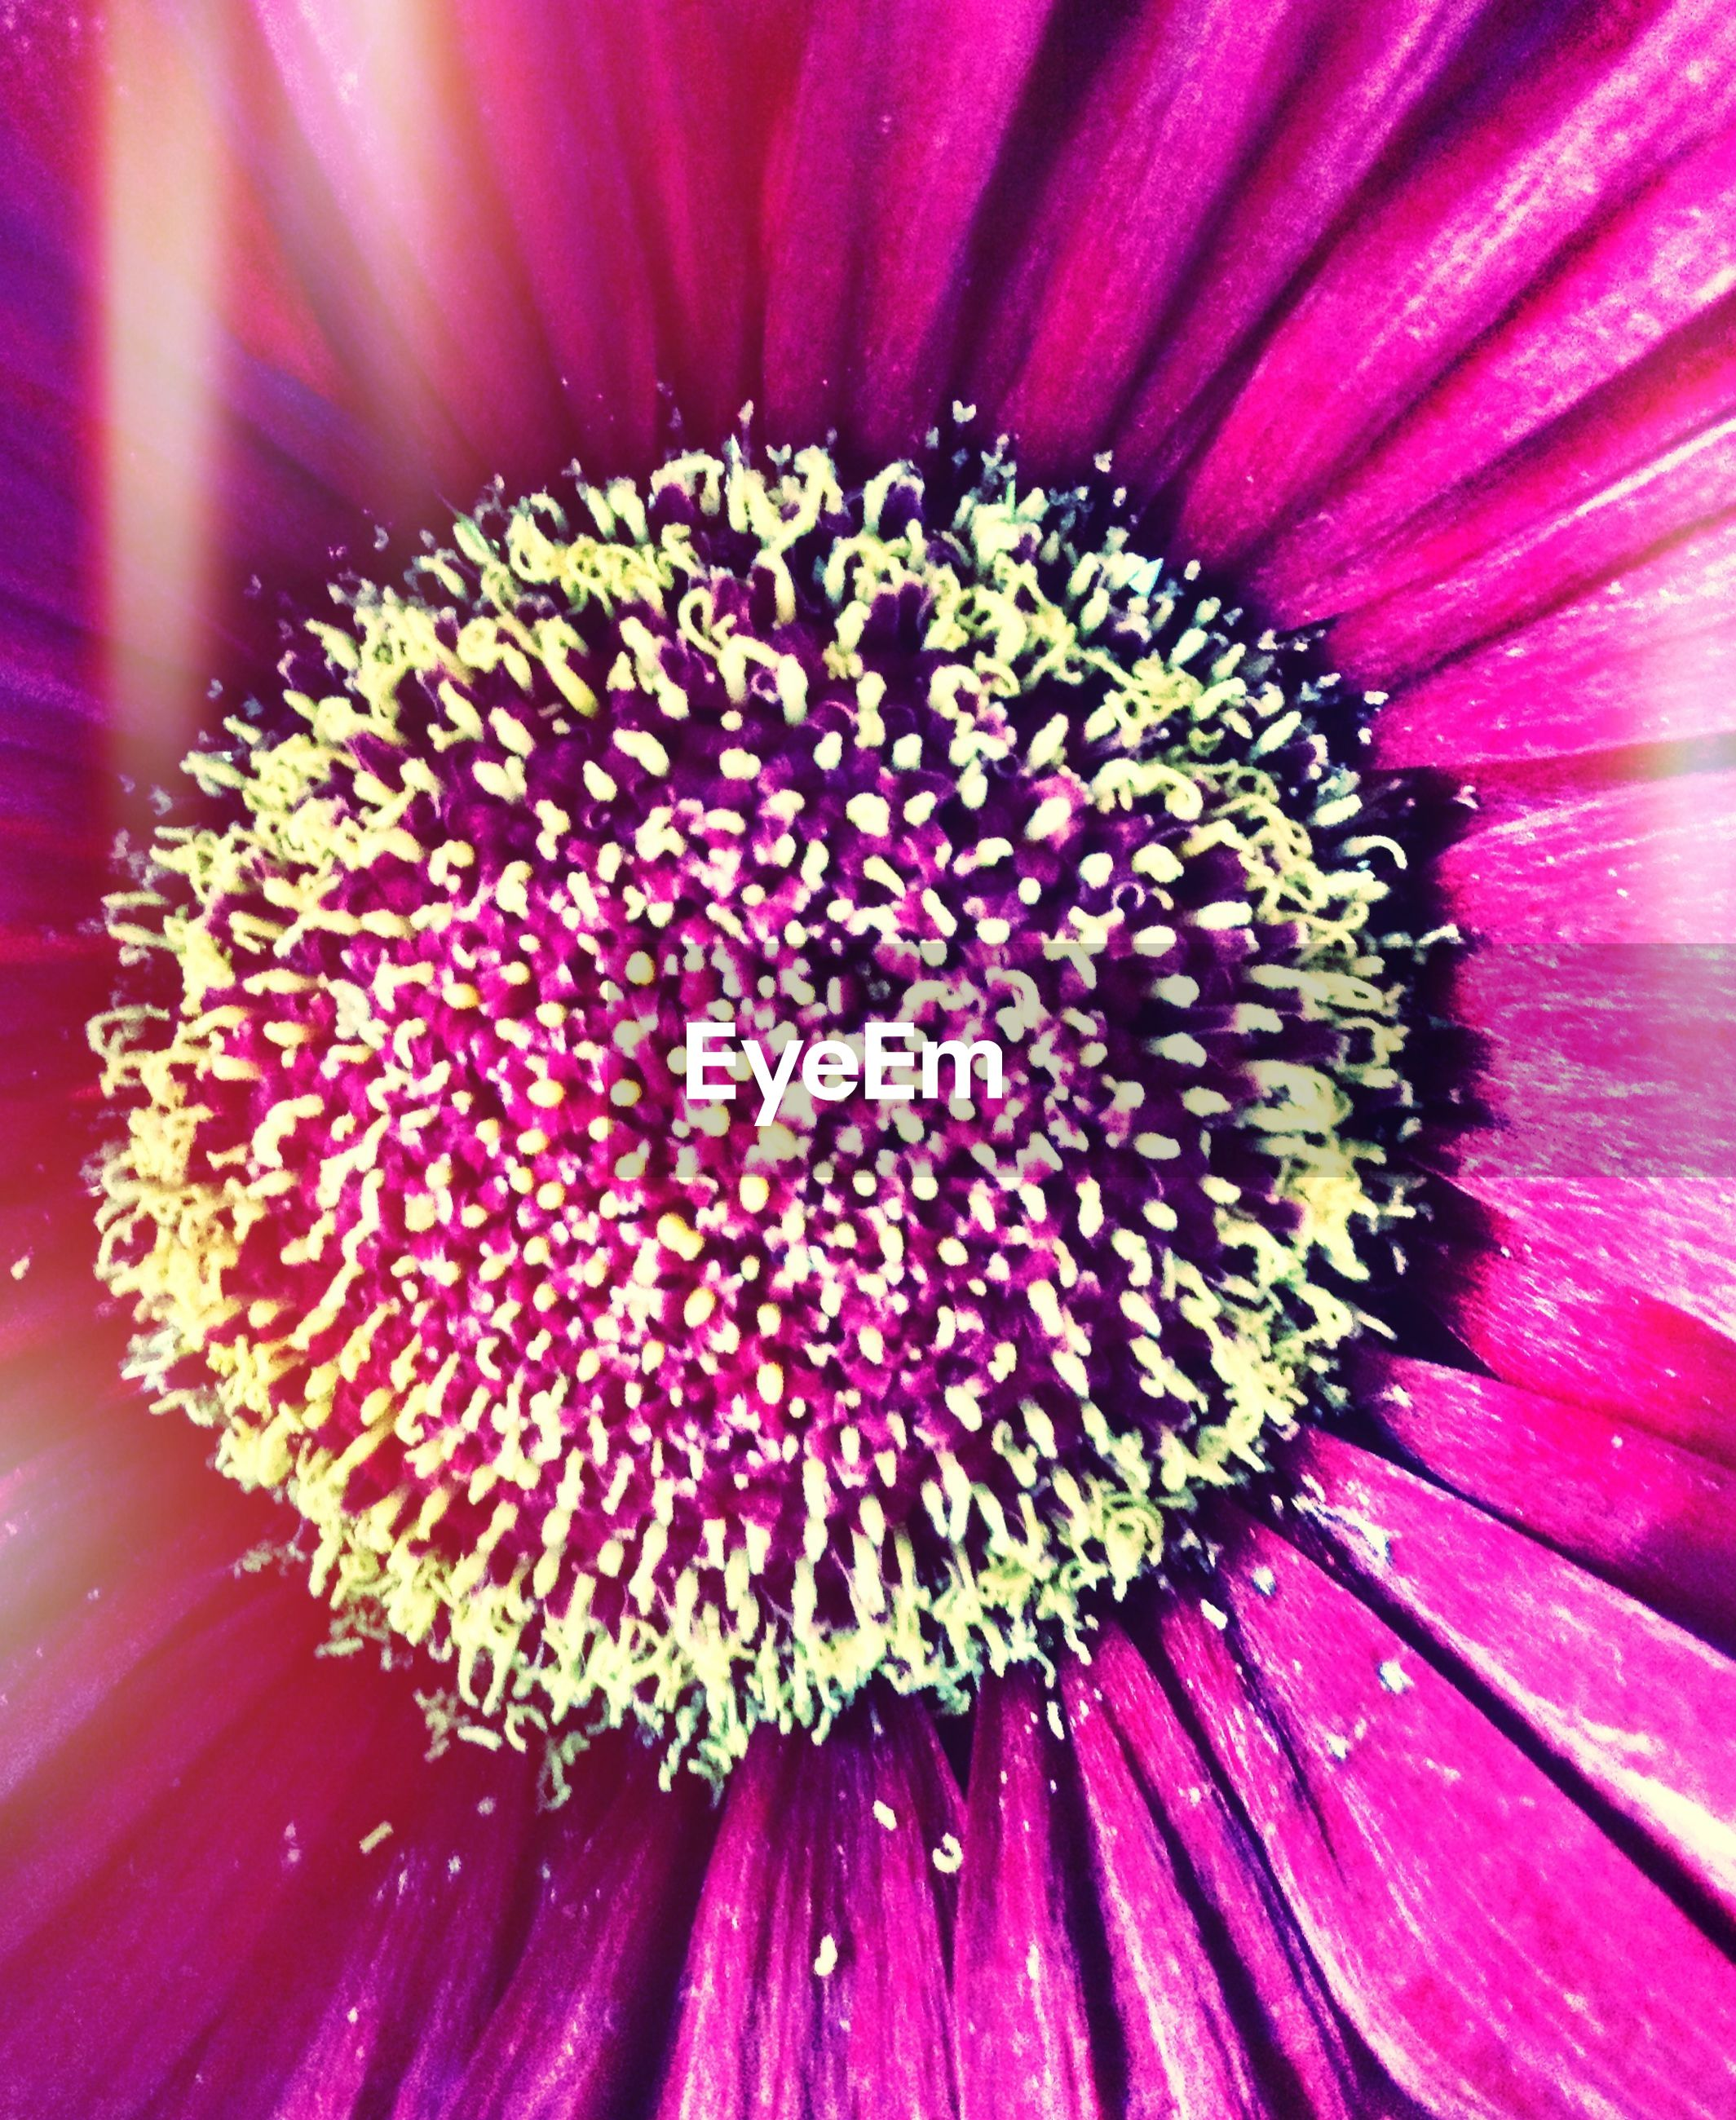 flower, petal, flower head, freshness, fragility, beauty in nature, full frame, backgrounds, pollen, close-up, growth, single flower, nature, pink color, extreme close-up, macro, stamen, in bloom, blooming, natural pattern